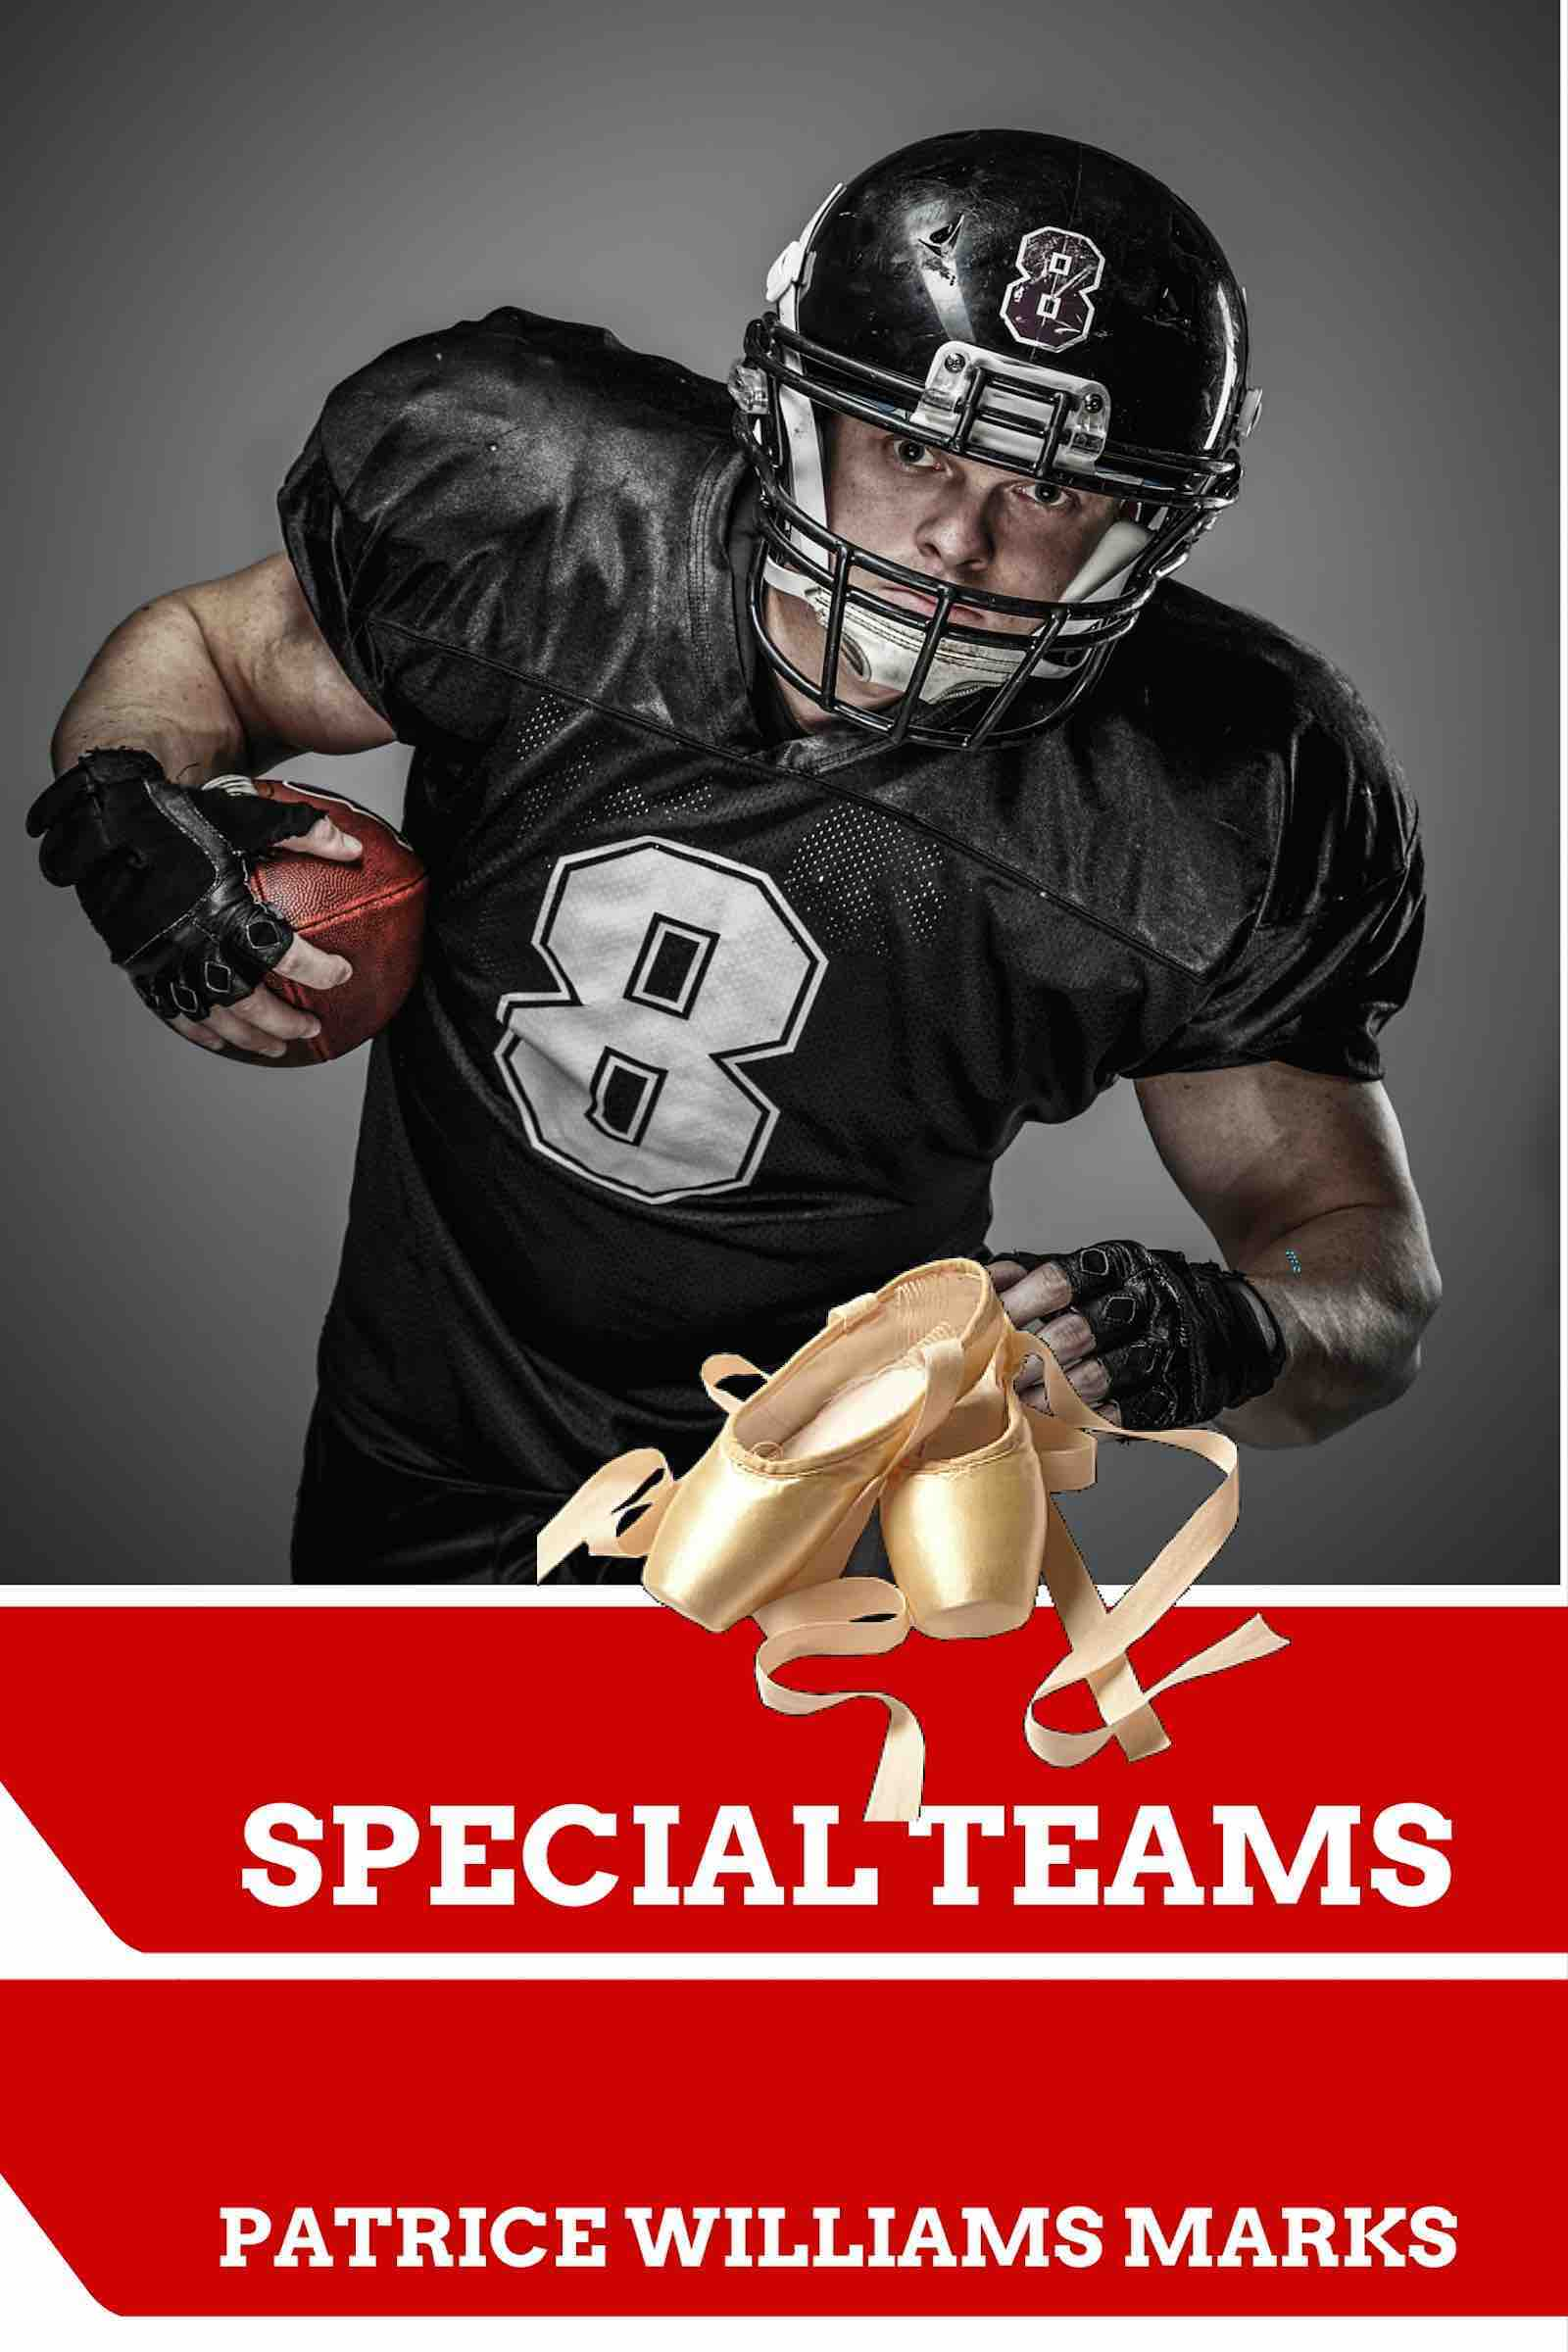 SPECIAL TEAMS shrink